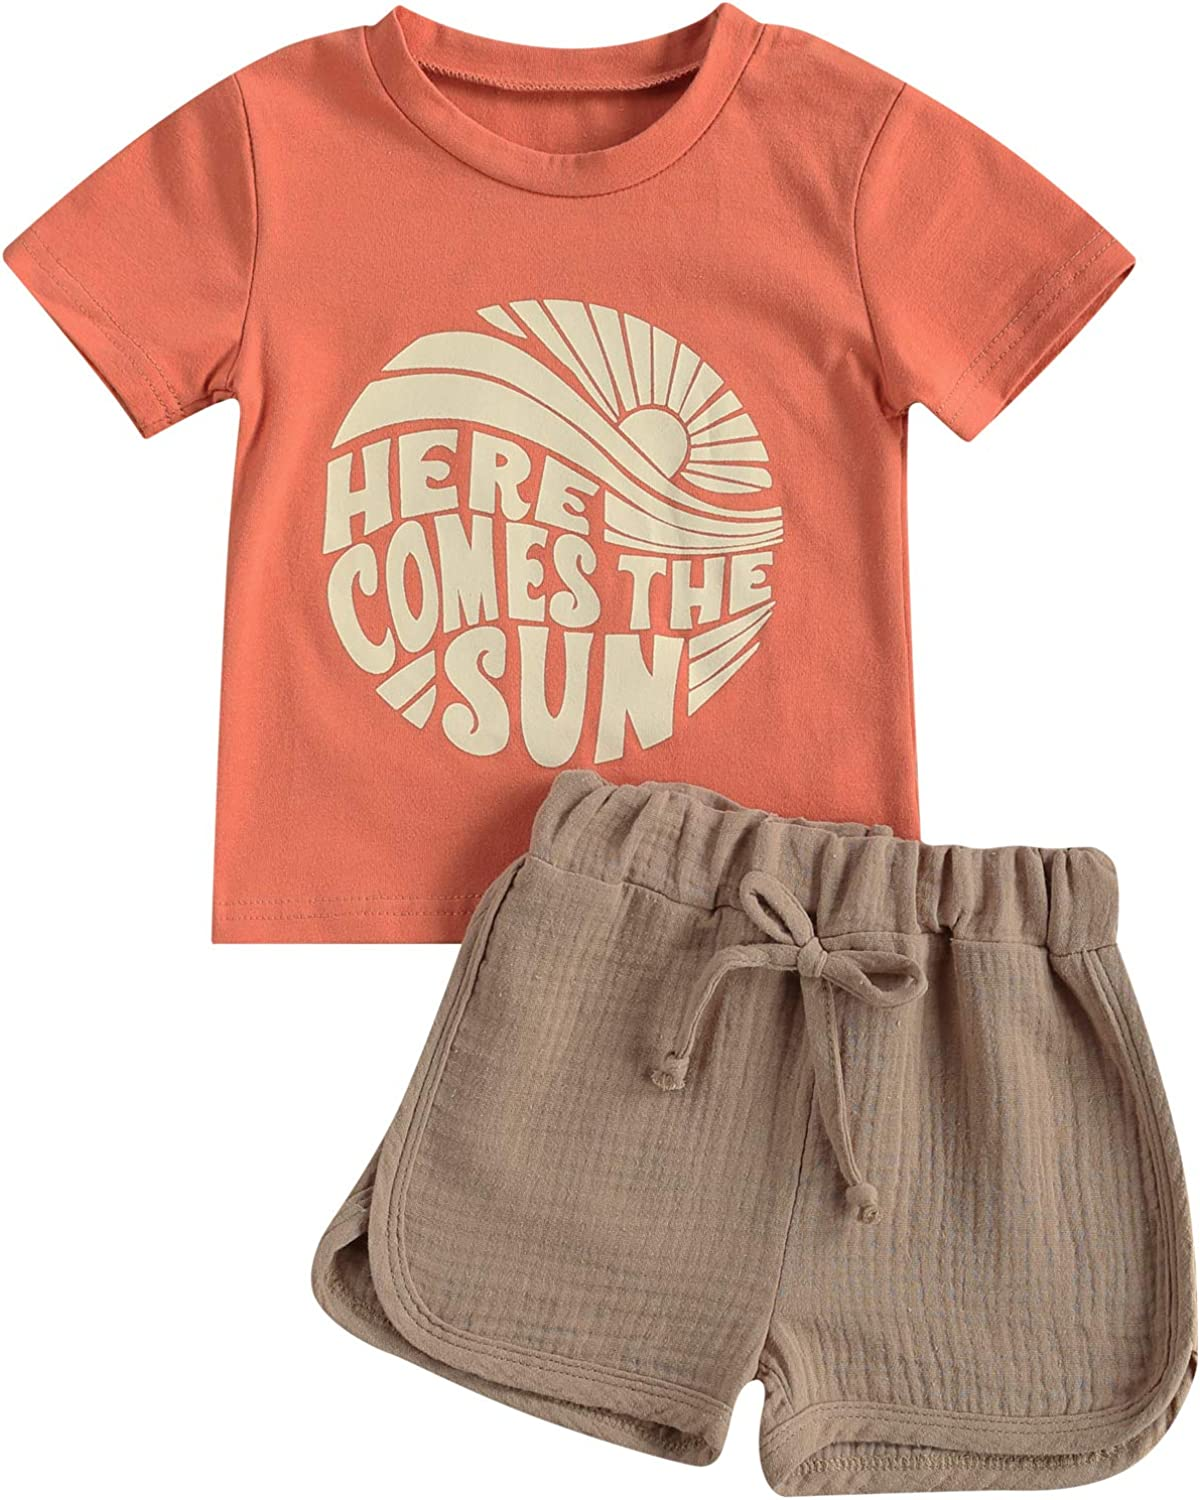 Baby Boy Summer Clothes Here Comes Tops Elastic Free shipping New T-Shirts Sun The All items free shipping